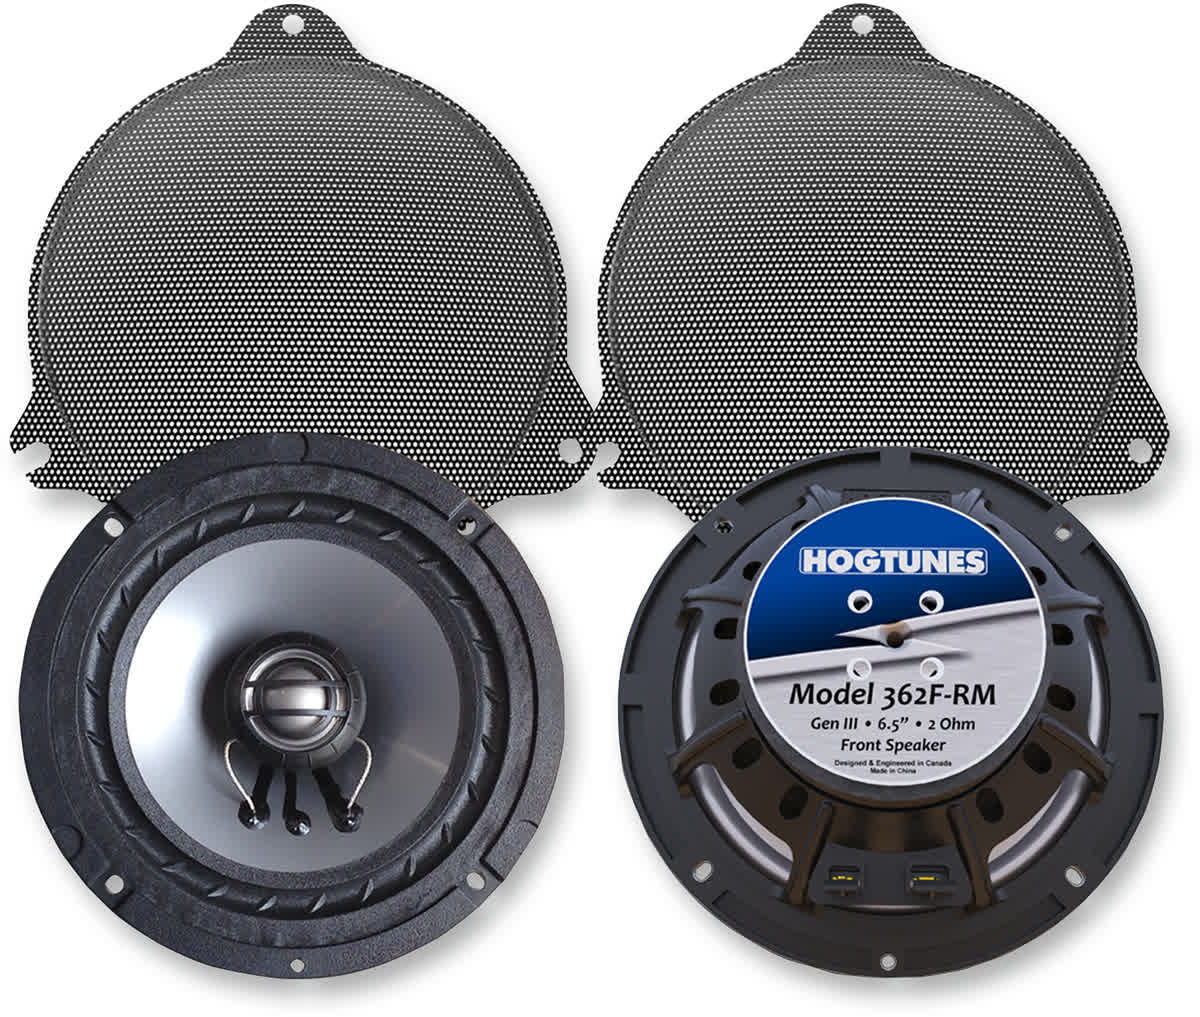 Hogtunes 362F-RM 6.5in. Replacement Front Speakers Harley 14-'19 FLH 4405-0345